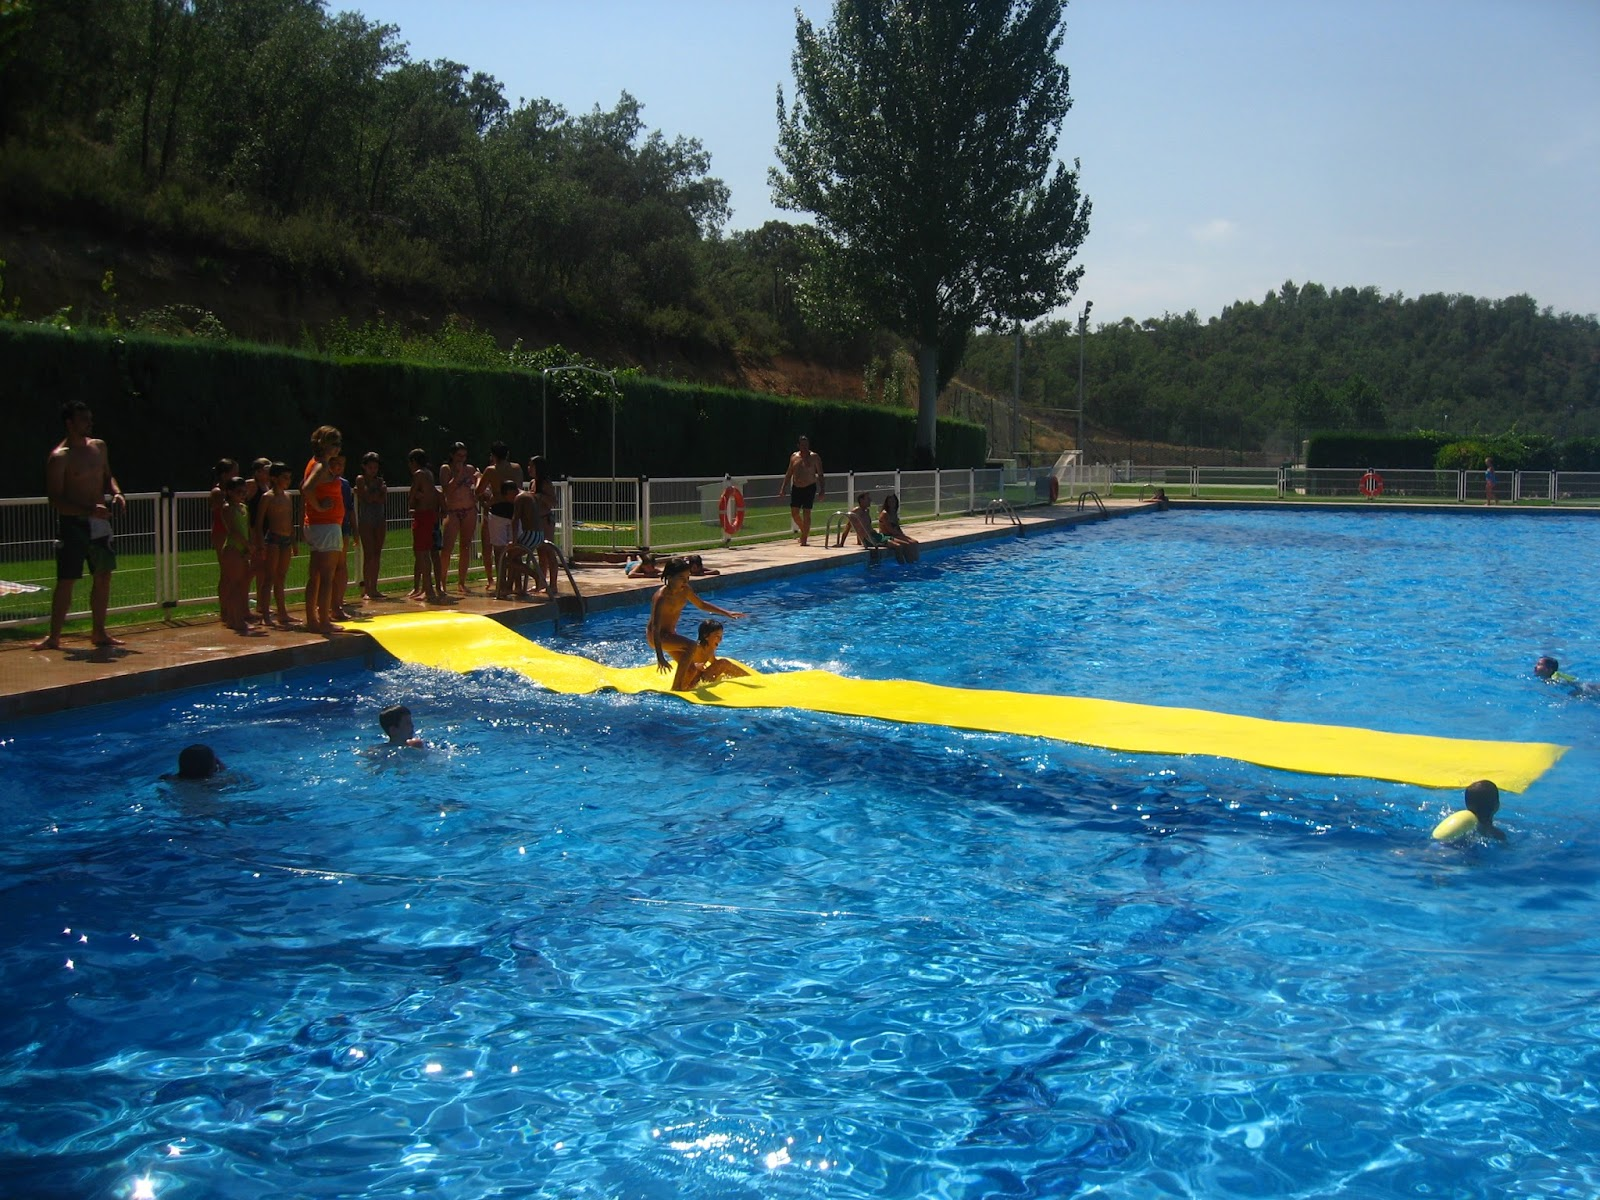 Club canicross guadalajara ii campamento de canicross en for Piscina municipal san roque